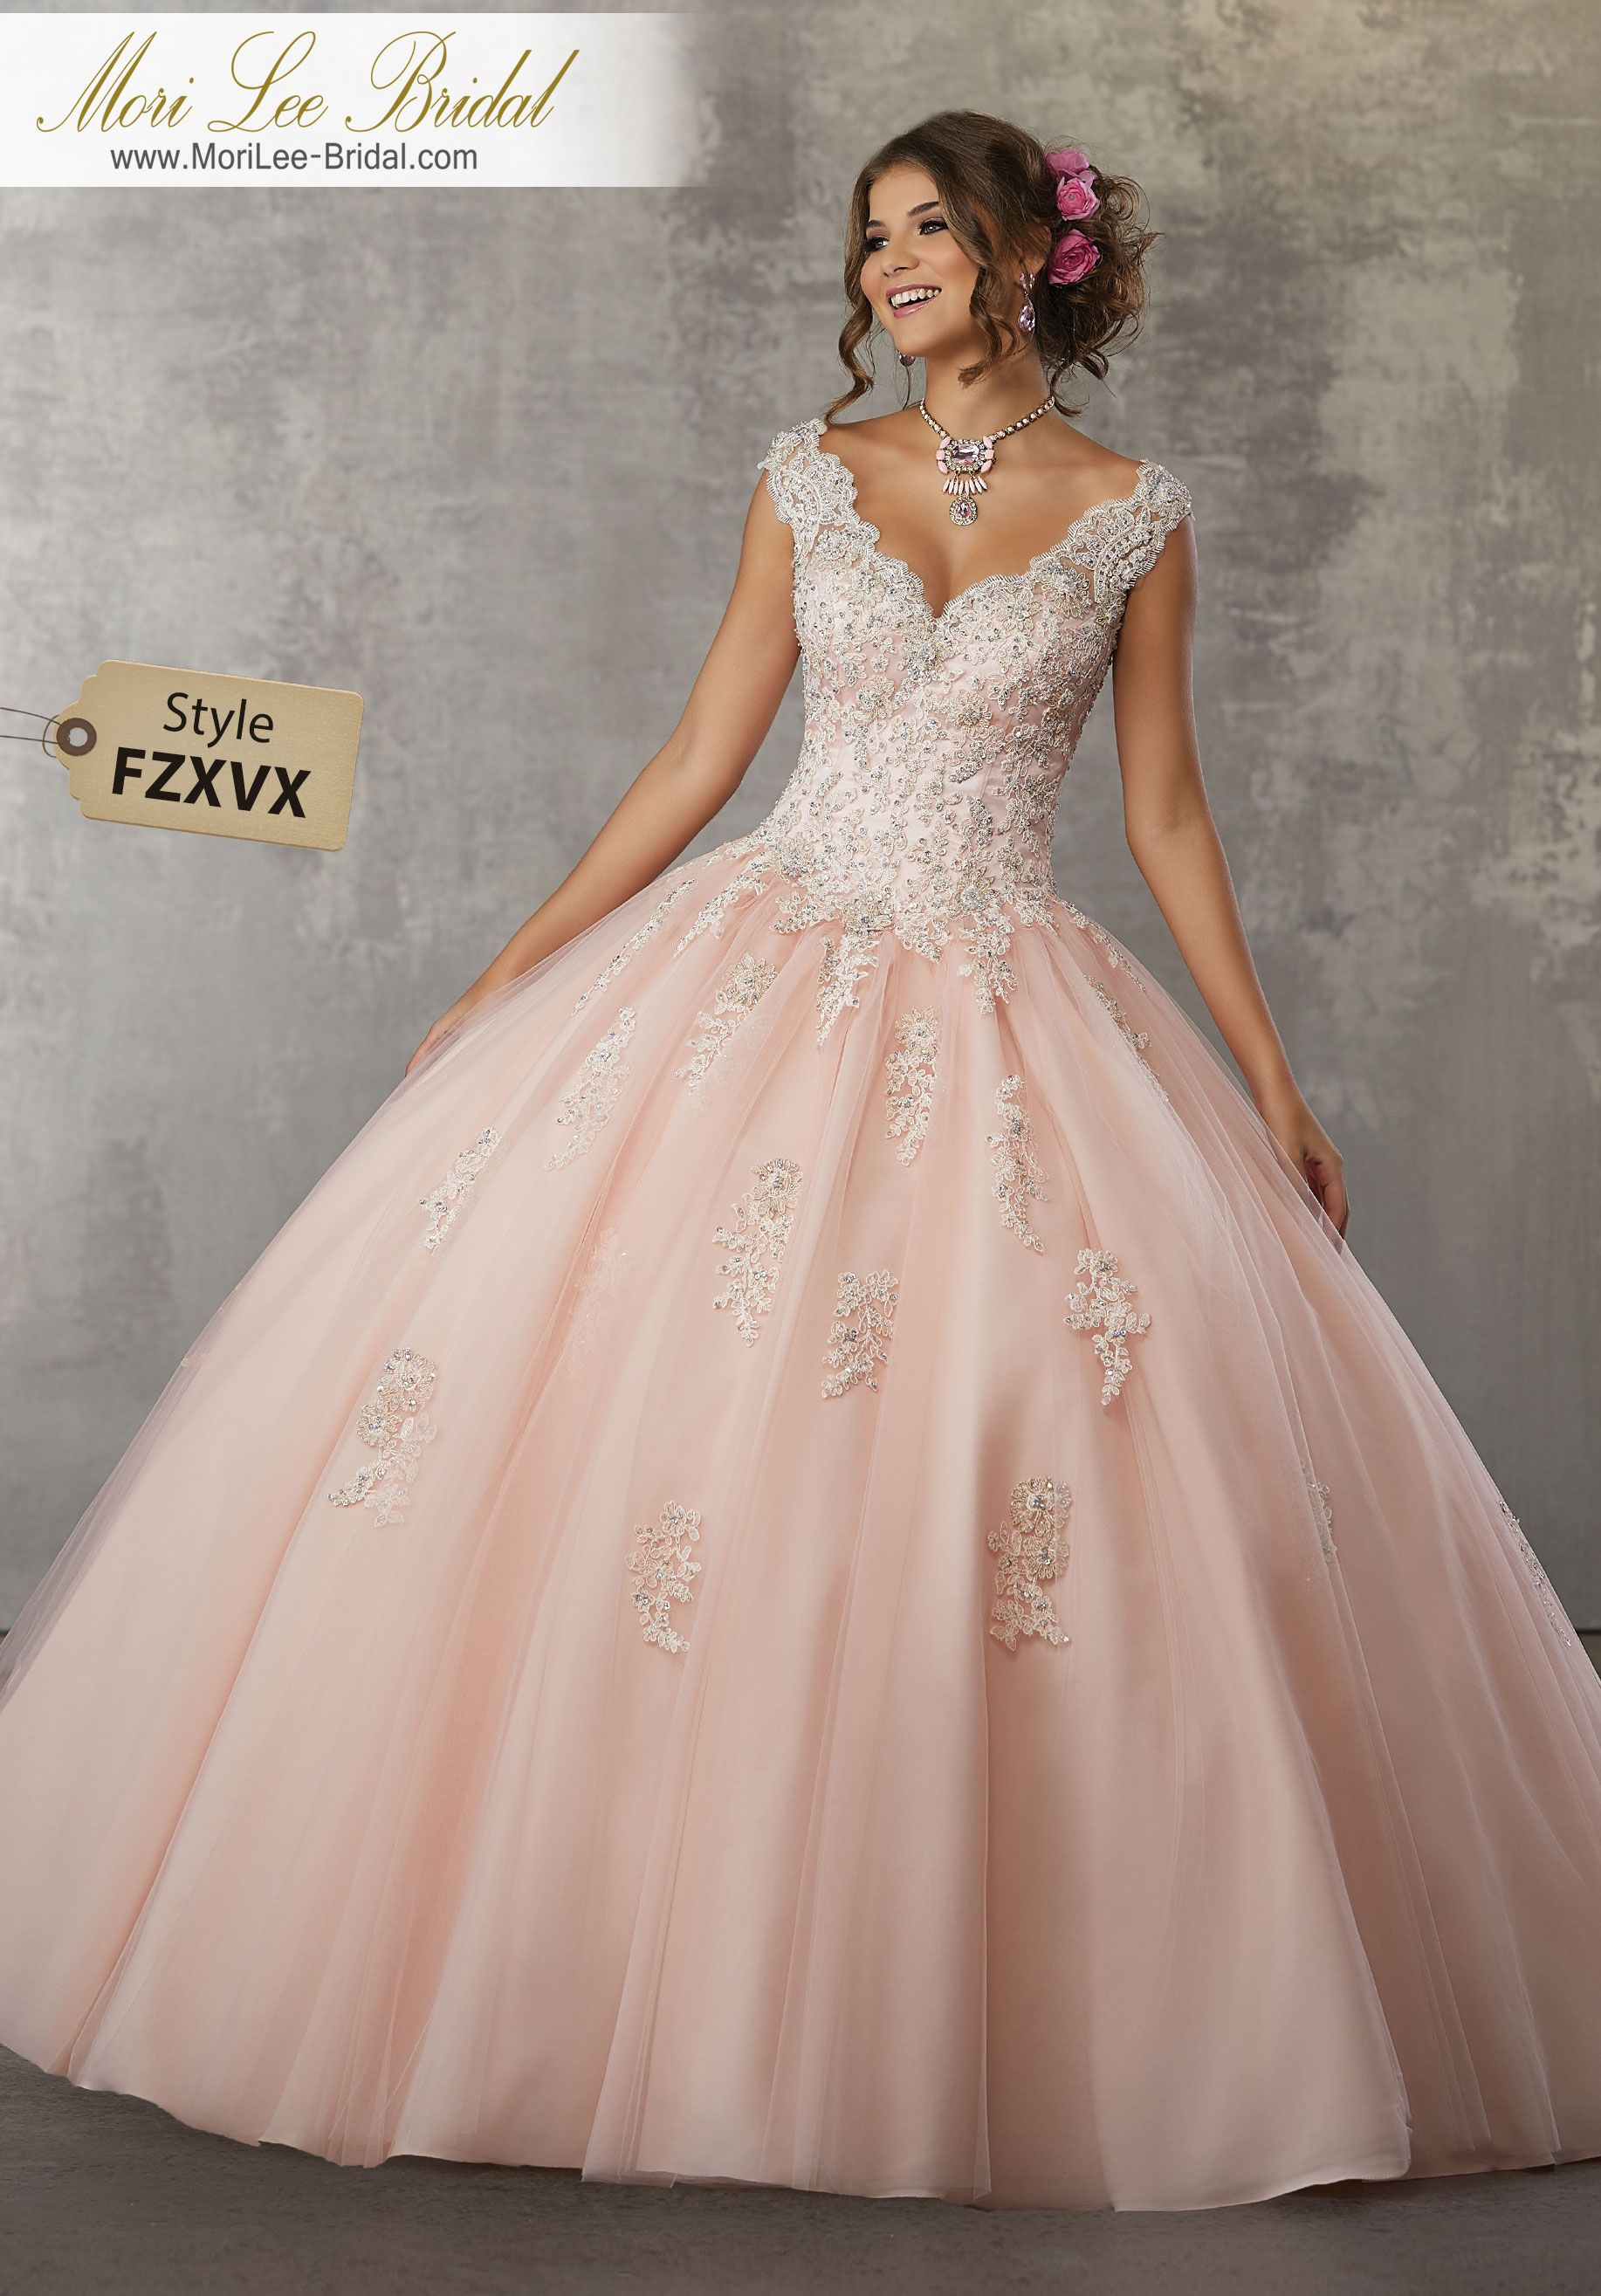 Style FZXVX Crystal Beaded Lace Appliqués on a Tulle Ball Gown This ...